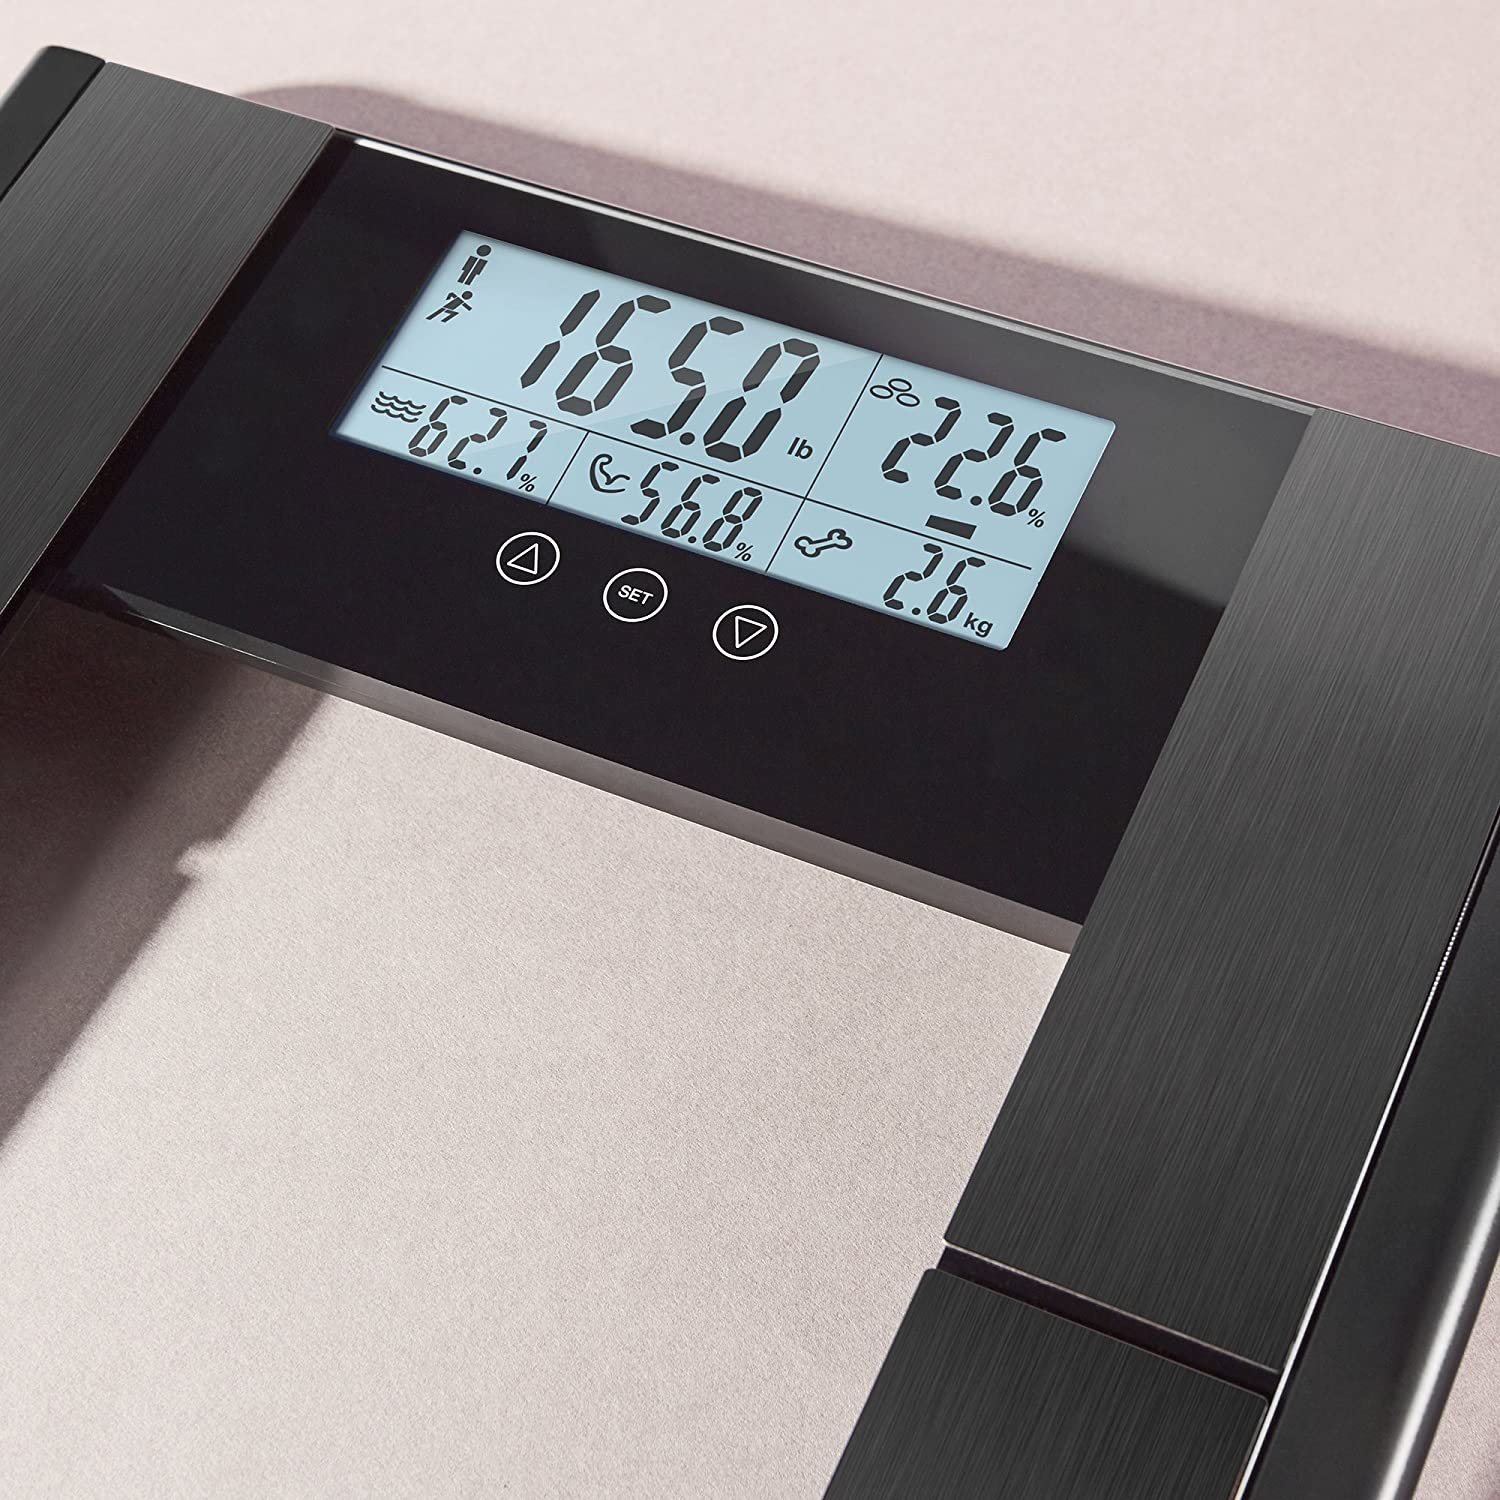 Amazon.com: Vitagoods Form Fit: Digital Scale and Body Analyzer (Body Composition Scale): Health & Personal Care